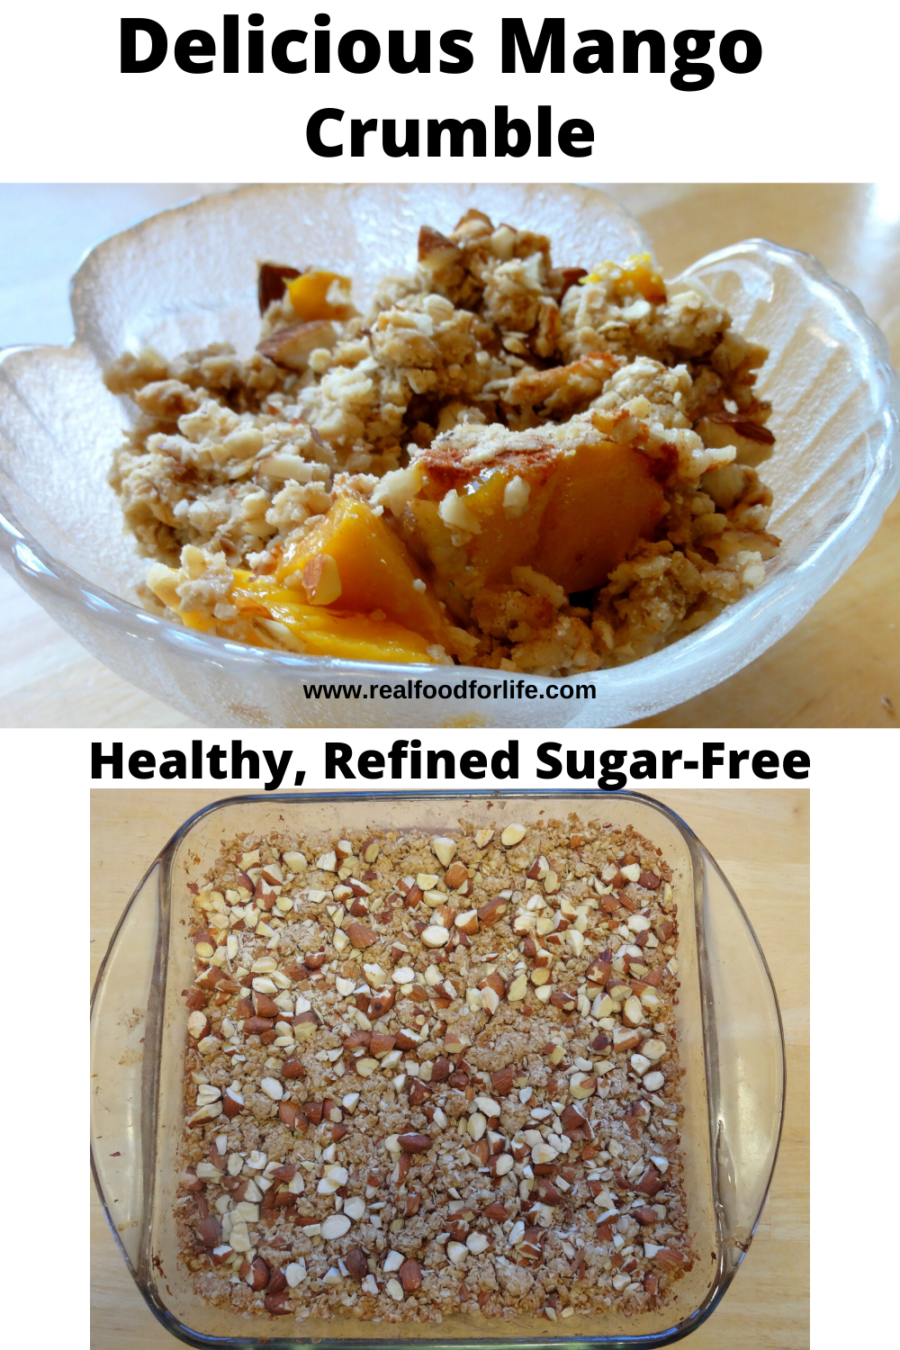 Deluxe Mango Crumble Is A Healthy Dessert Real Food For Life